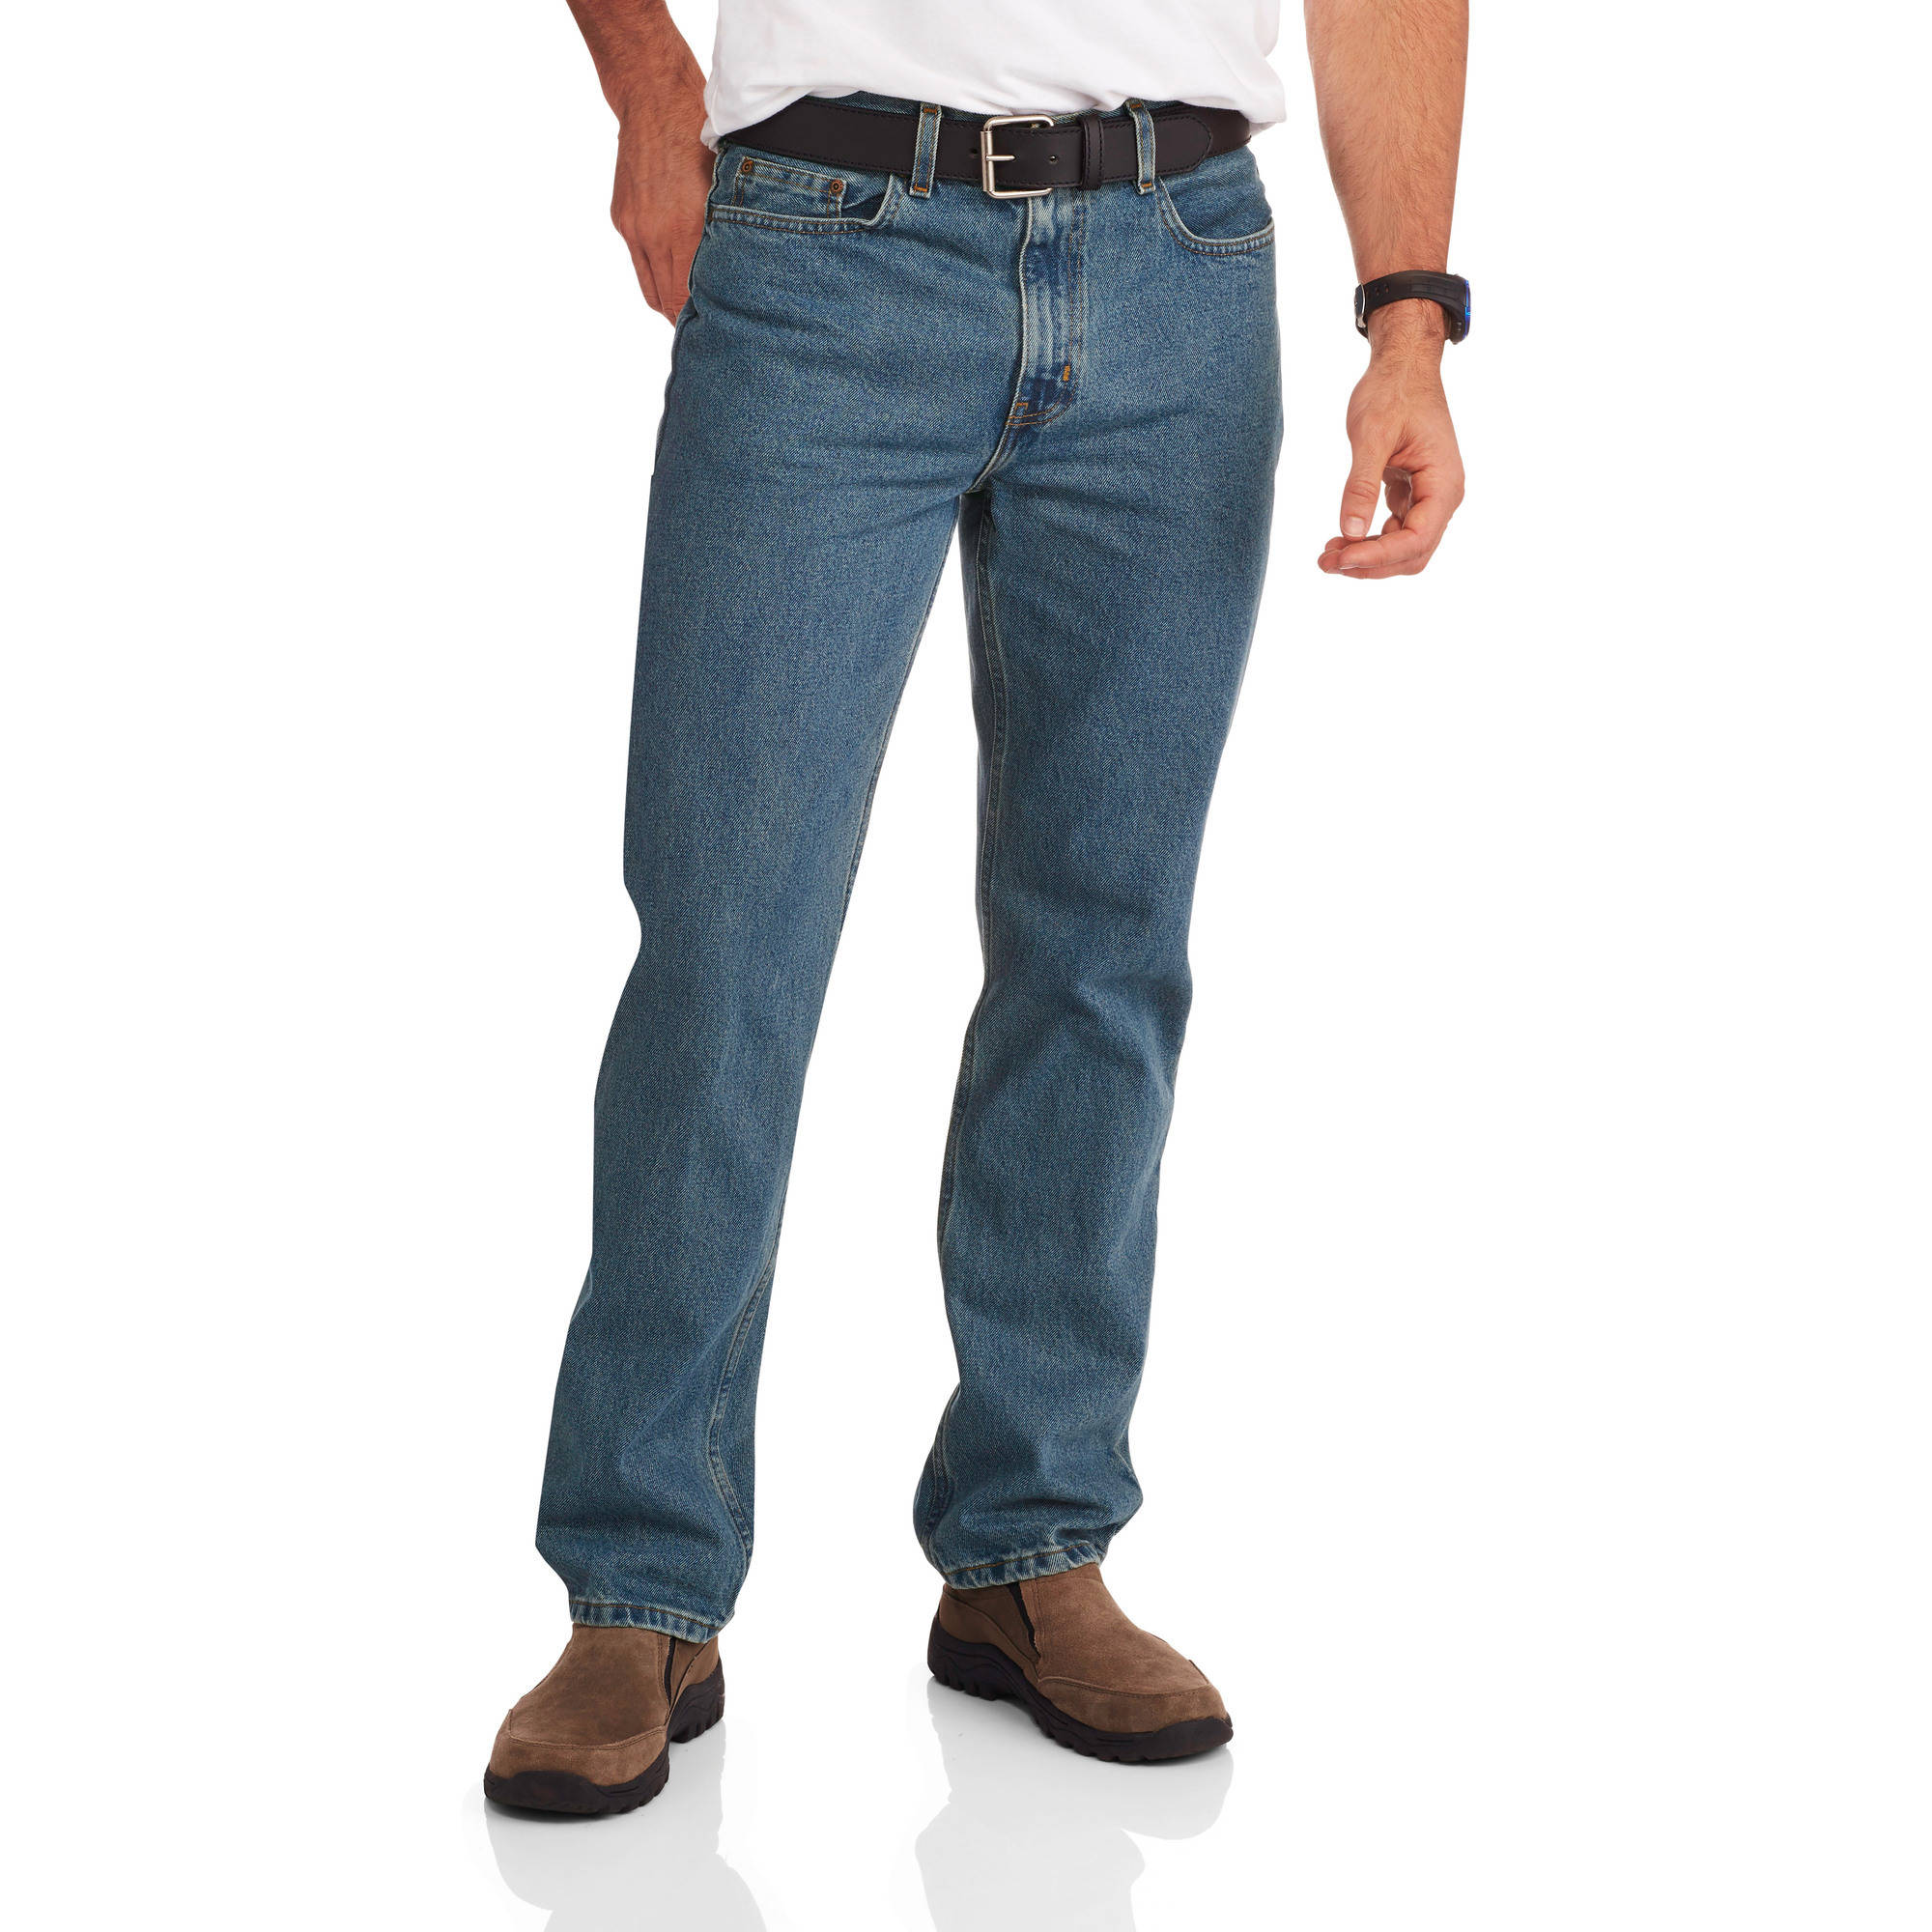 Faded Glory - Men's Original Fit Jeans